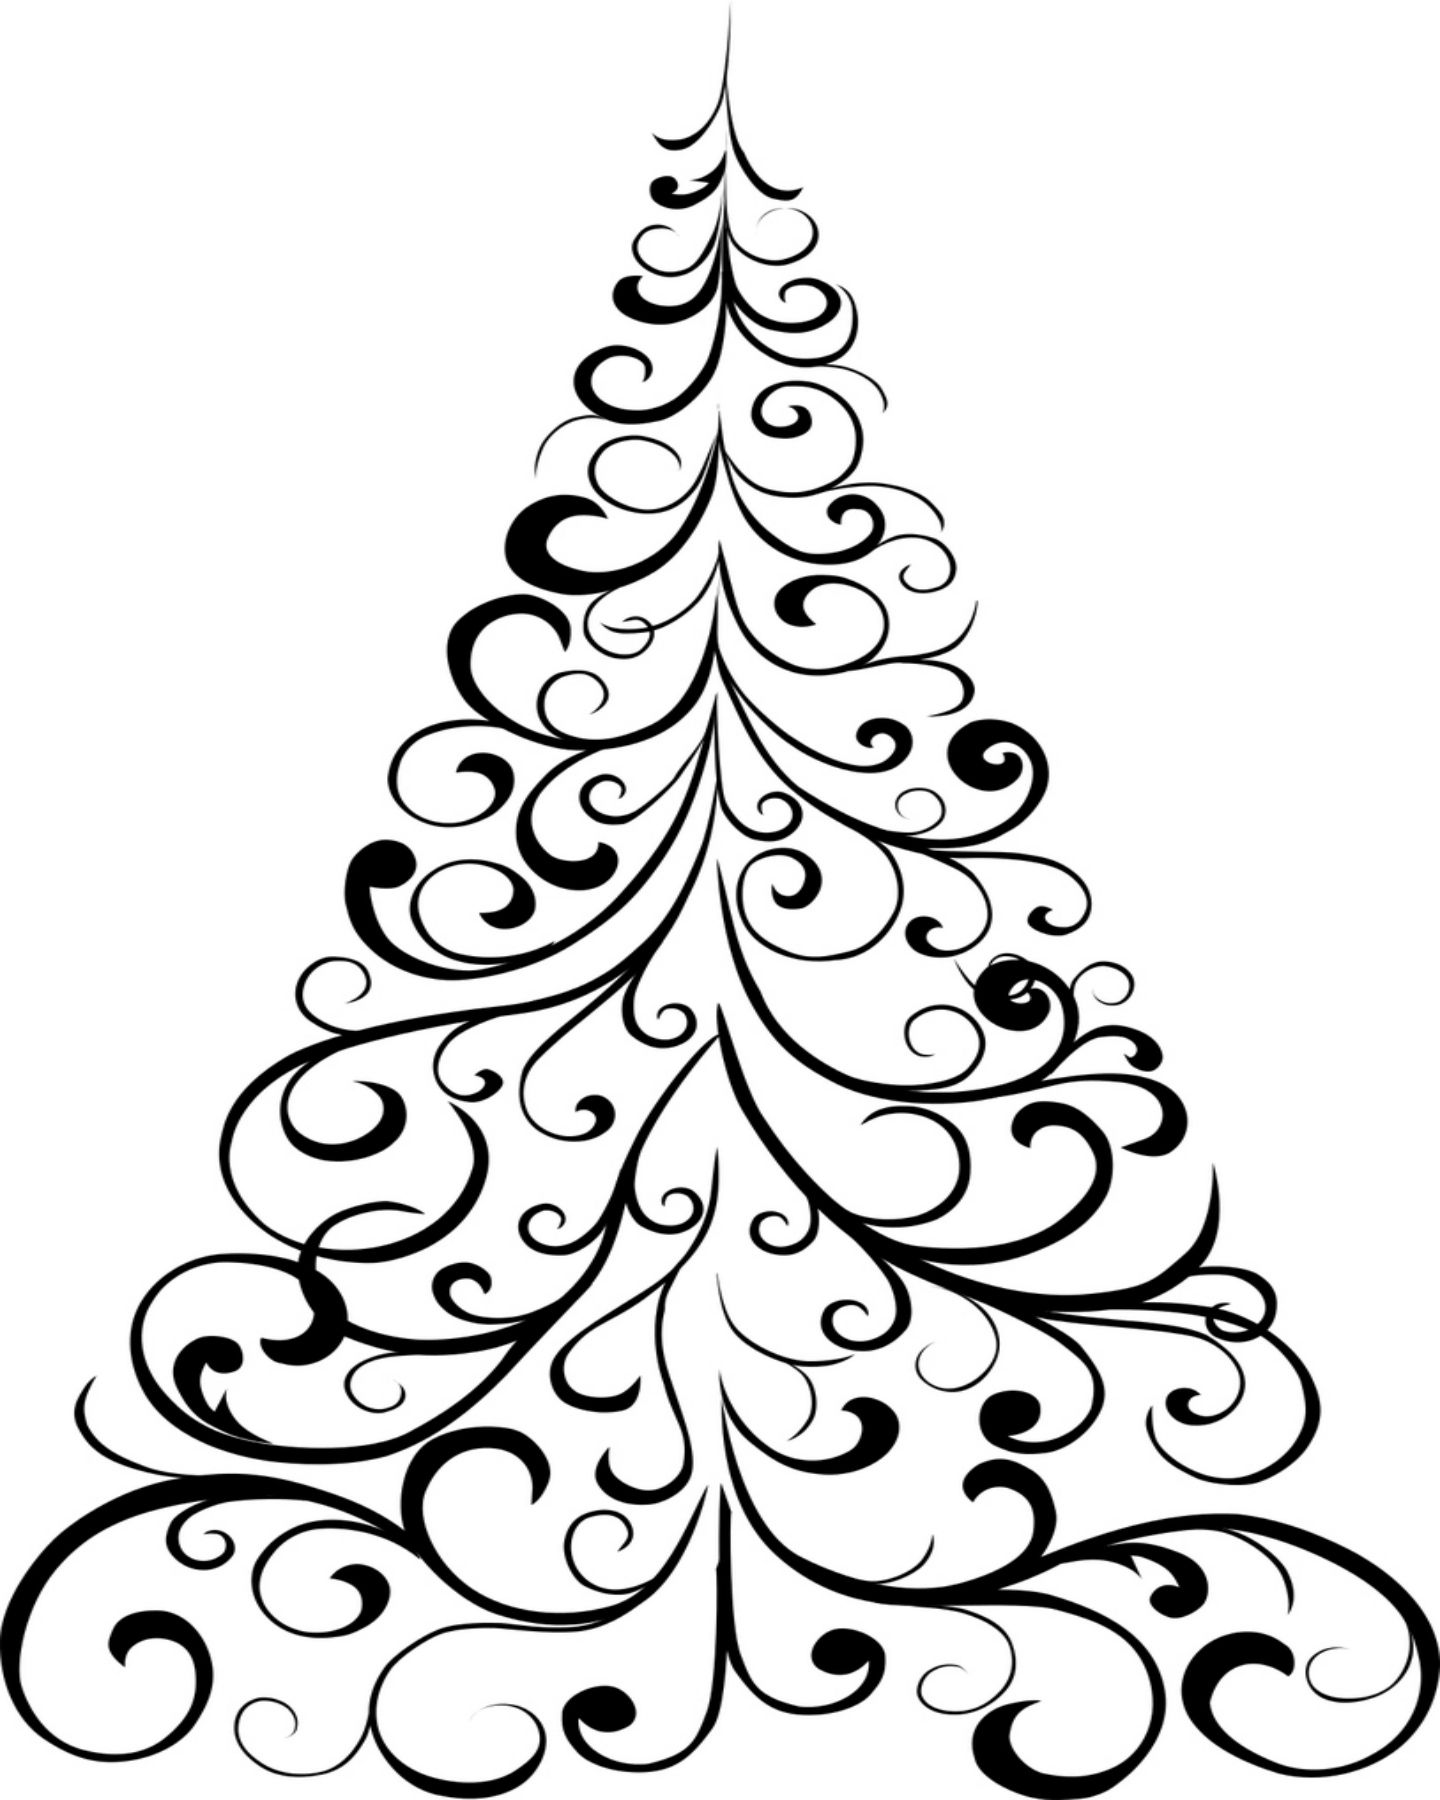 Free Printable Christmas Tree Coloring Page Holly Jolly